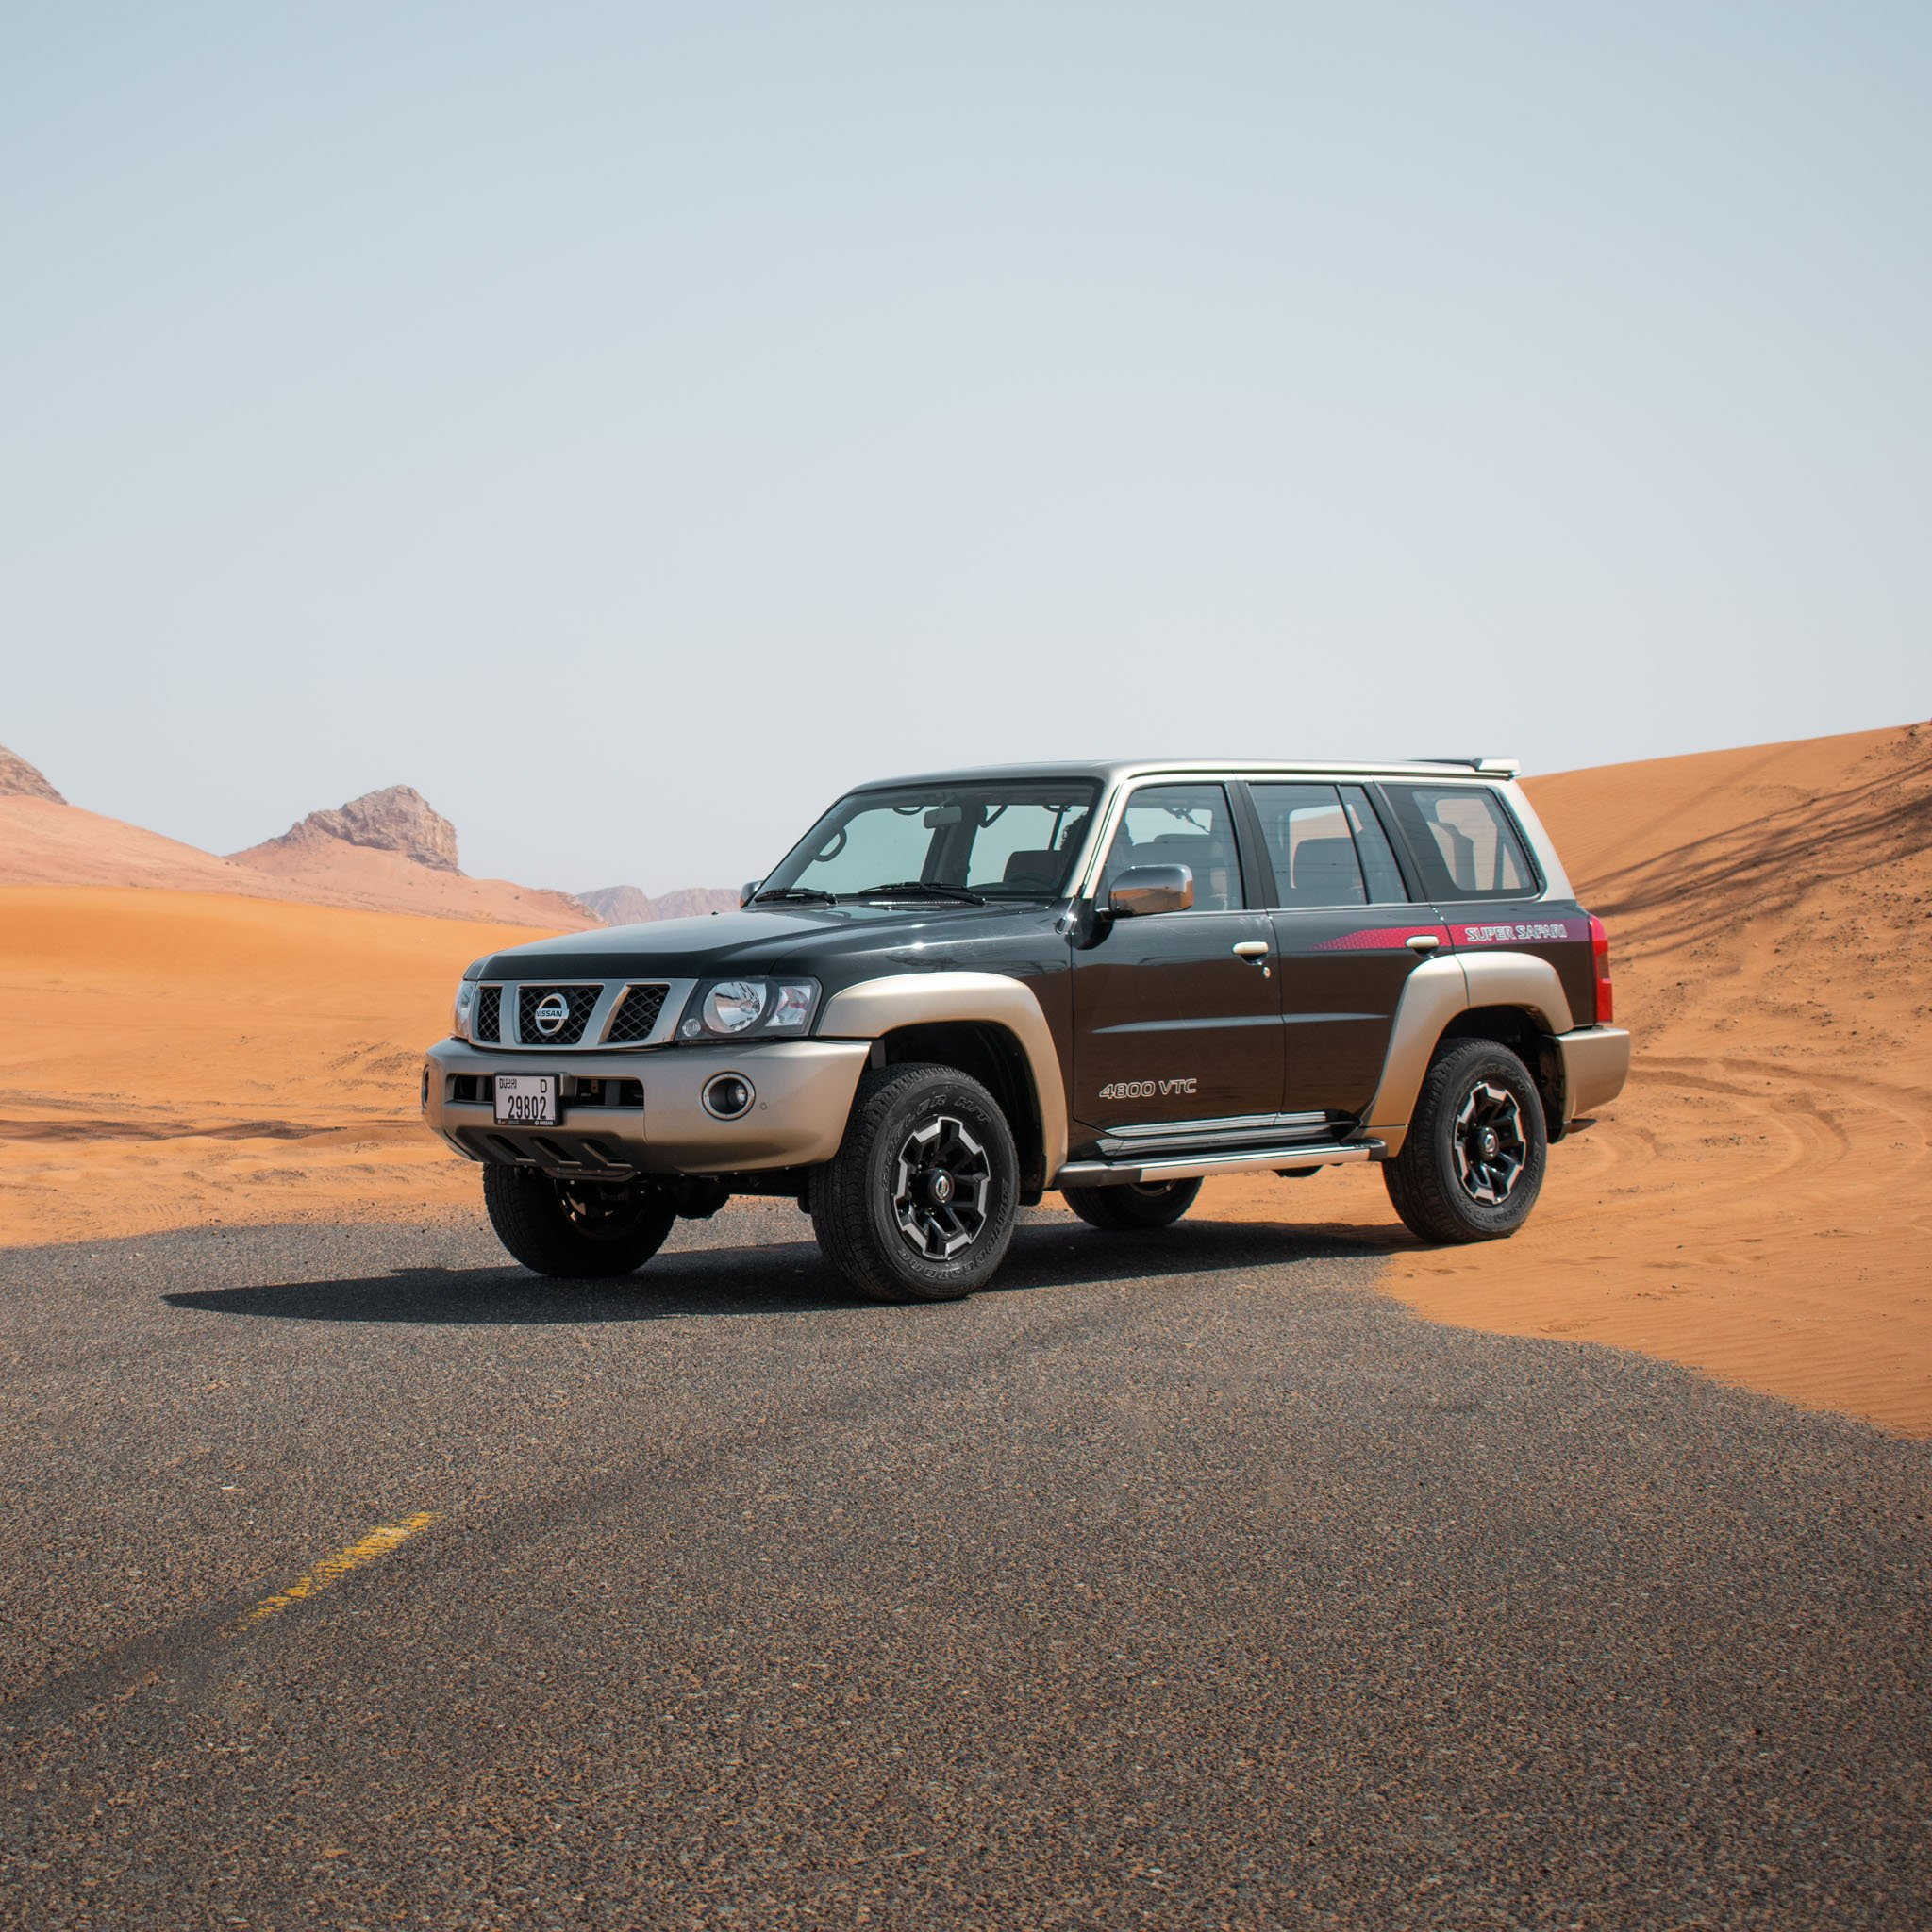 2021 Nissan Patrol Super Safari